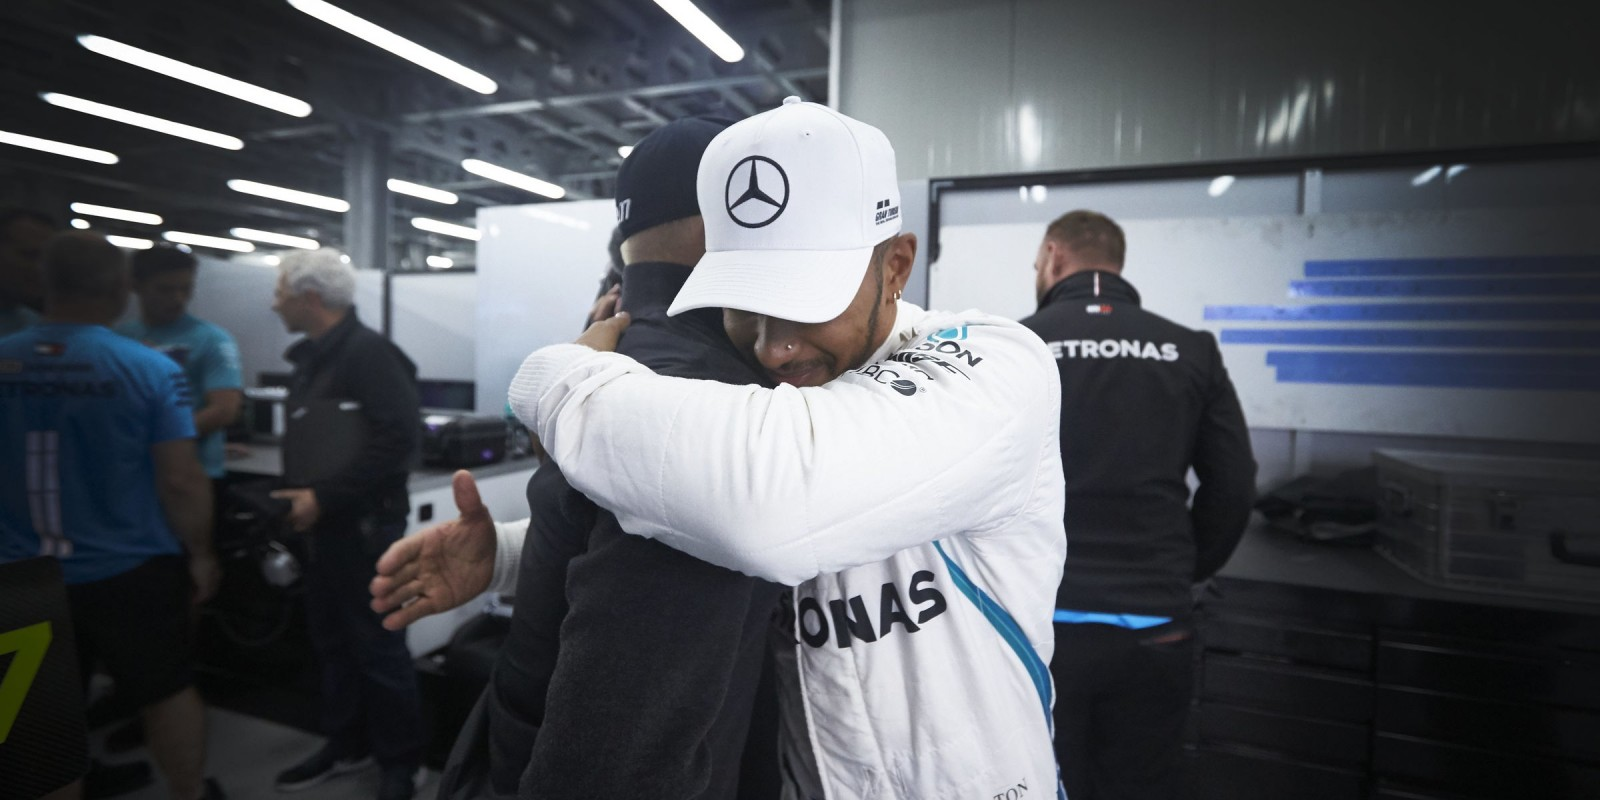 Sunday images from the 2018 Azerbaijan Grand Prix